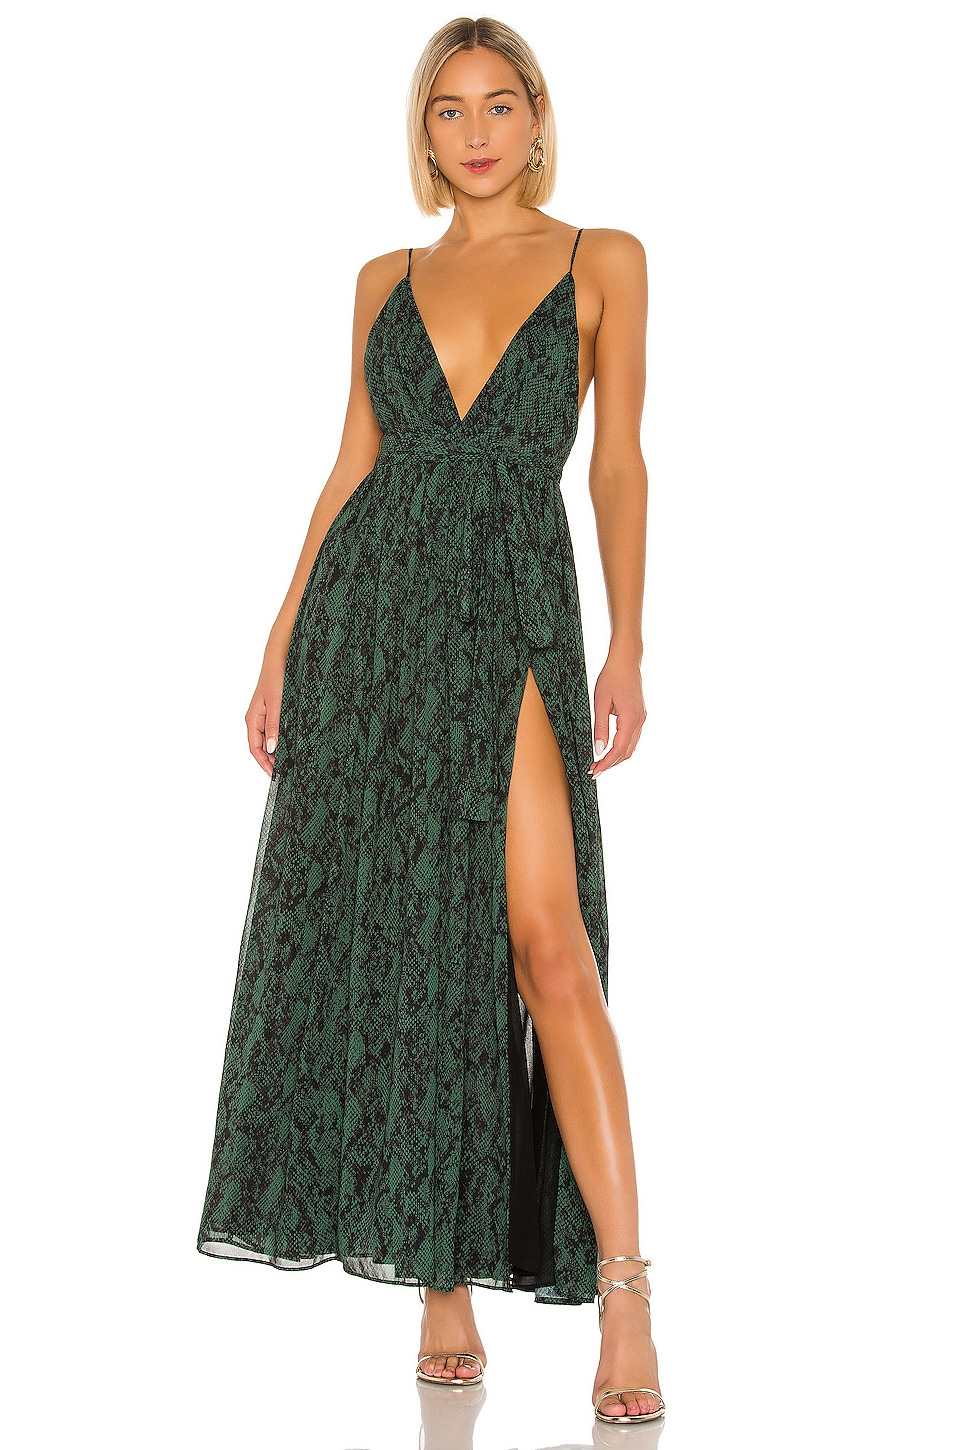 Michael Costello x REVOLVE Gillian Gown in Green Snake